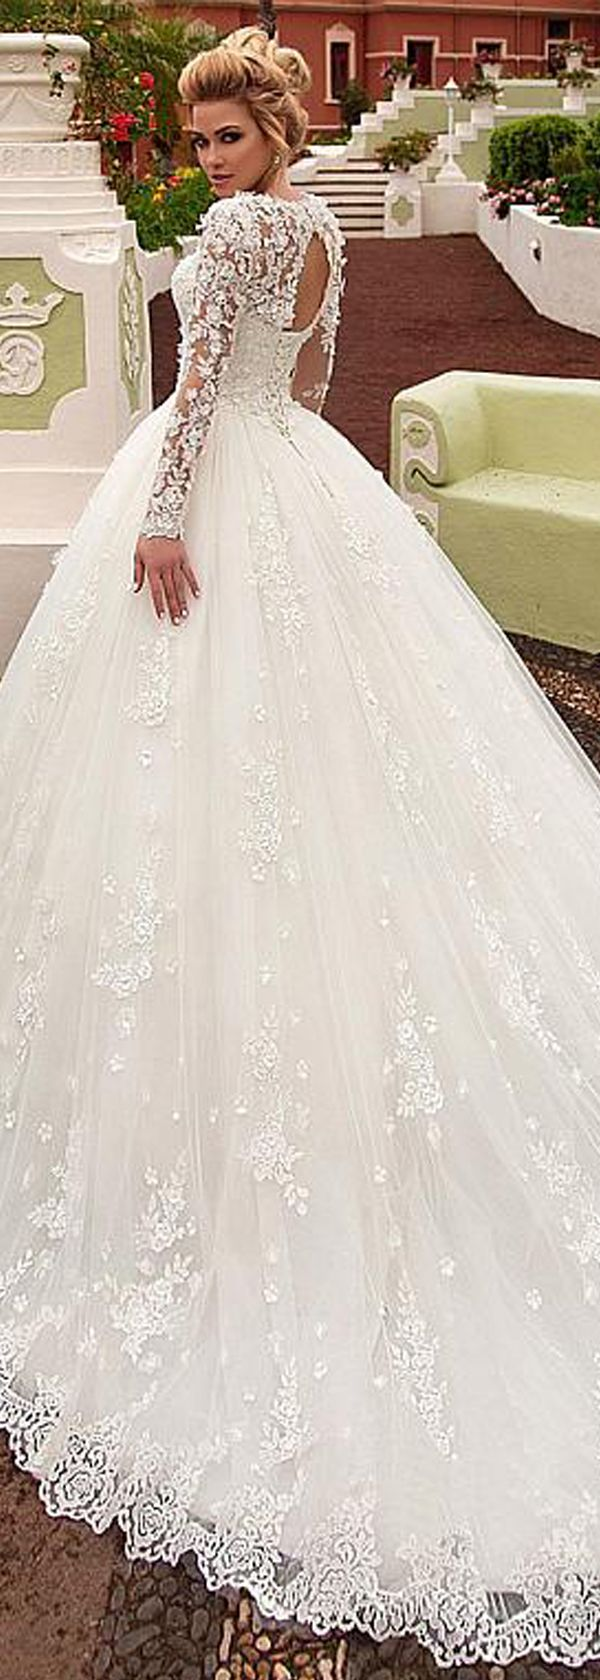 How much are wedding dresses  Attractive Tulle Jewel Neckline Ball Gown Wedding Dress With Beaded